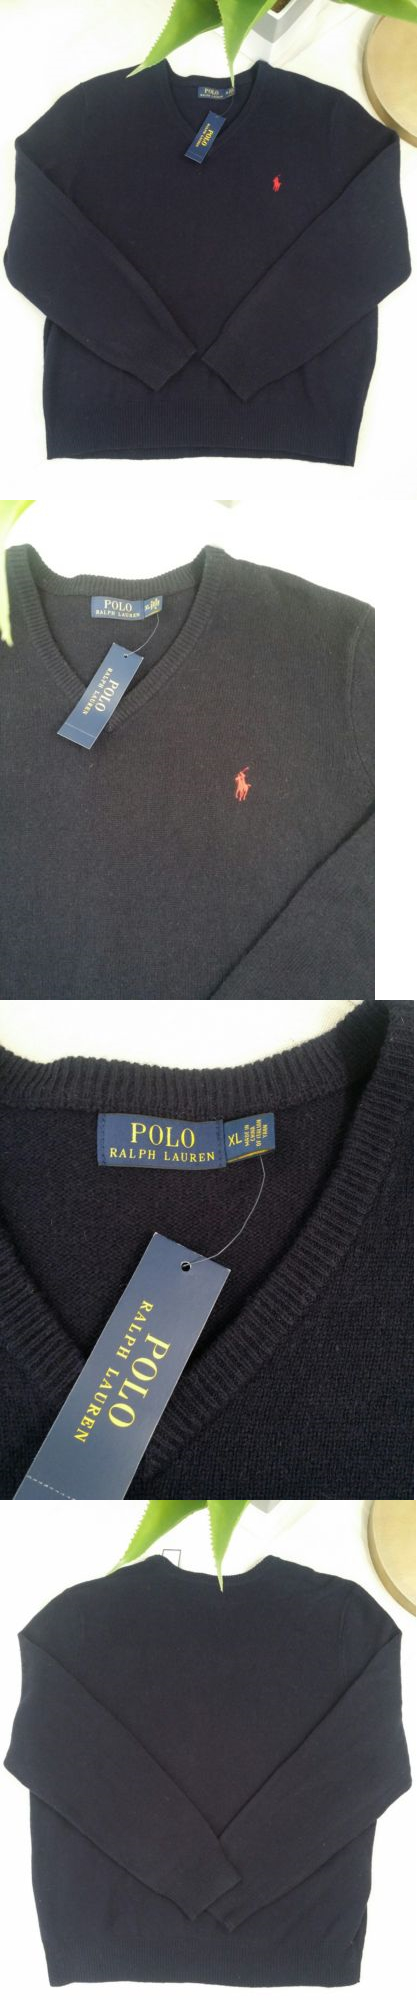 Sweaters 11484: Nwt Polo Ralph Lauren 100% Italian Yarn Sweater Cashmere V Neck Navy Blue Xl -> BUY IT NOW ONLY: $59.99 on eBay!